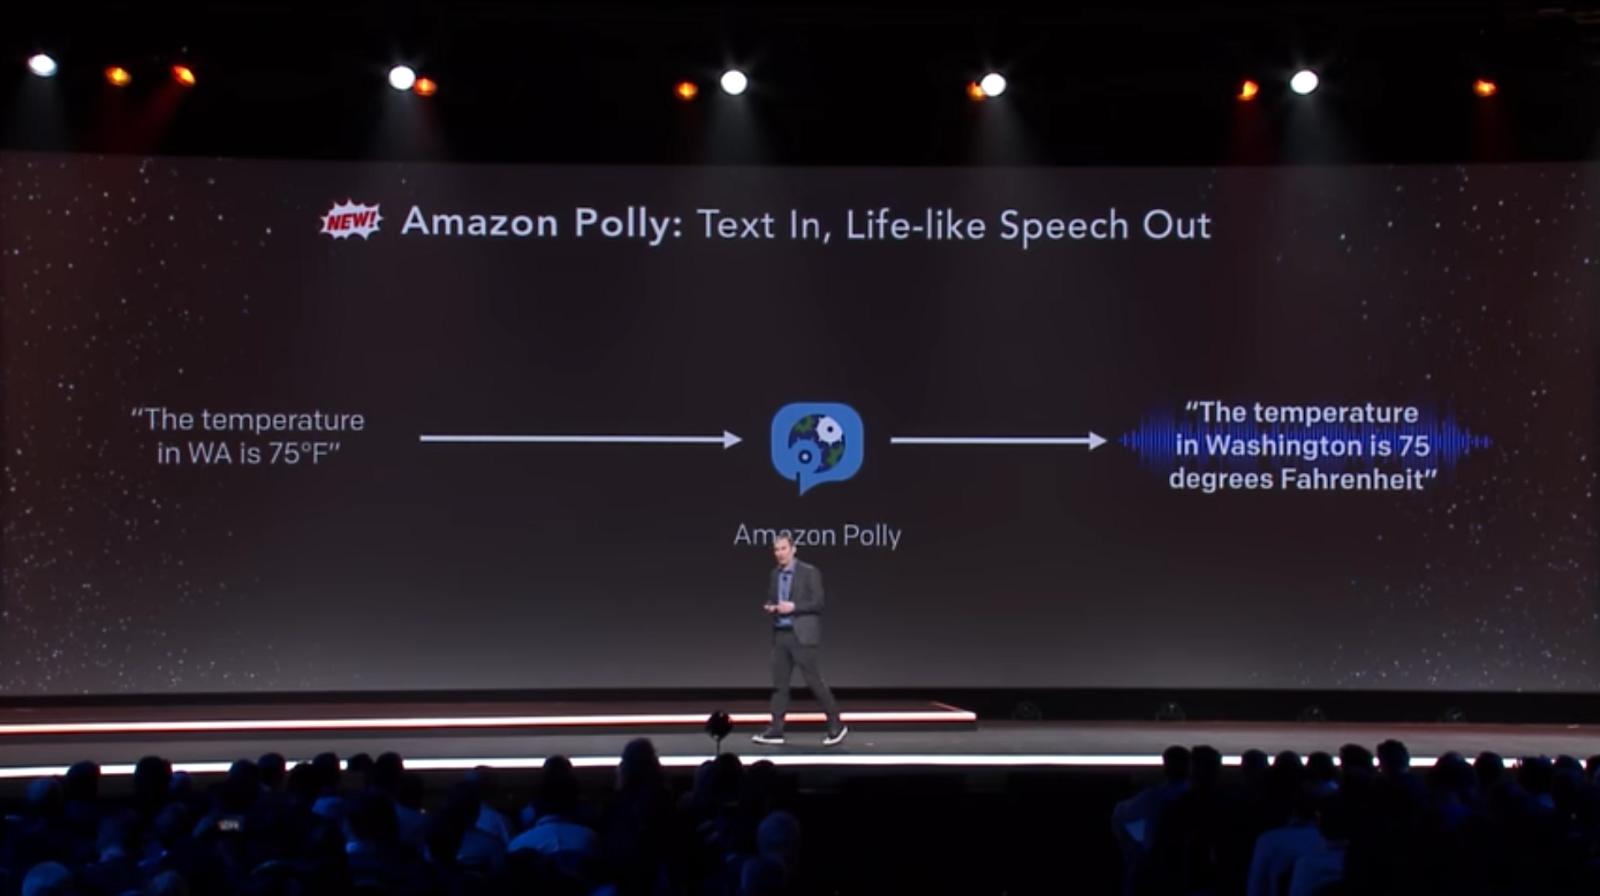 Getting Started with Amazon Polly using Node.js